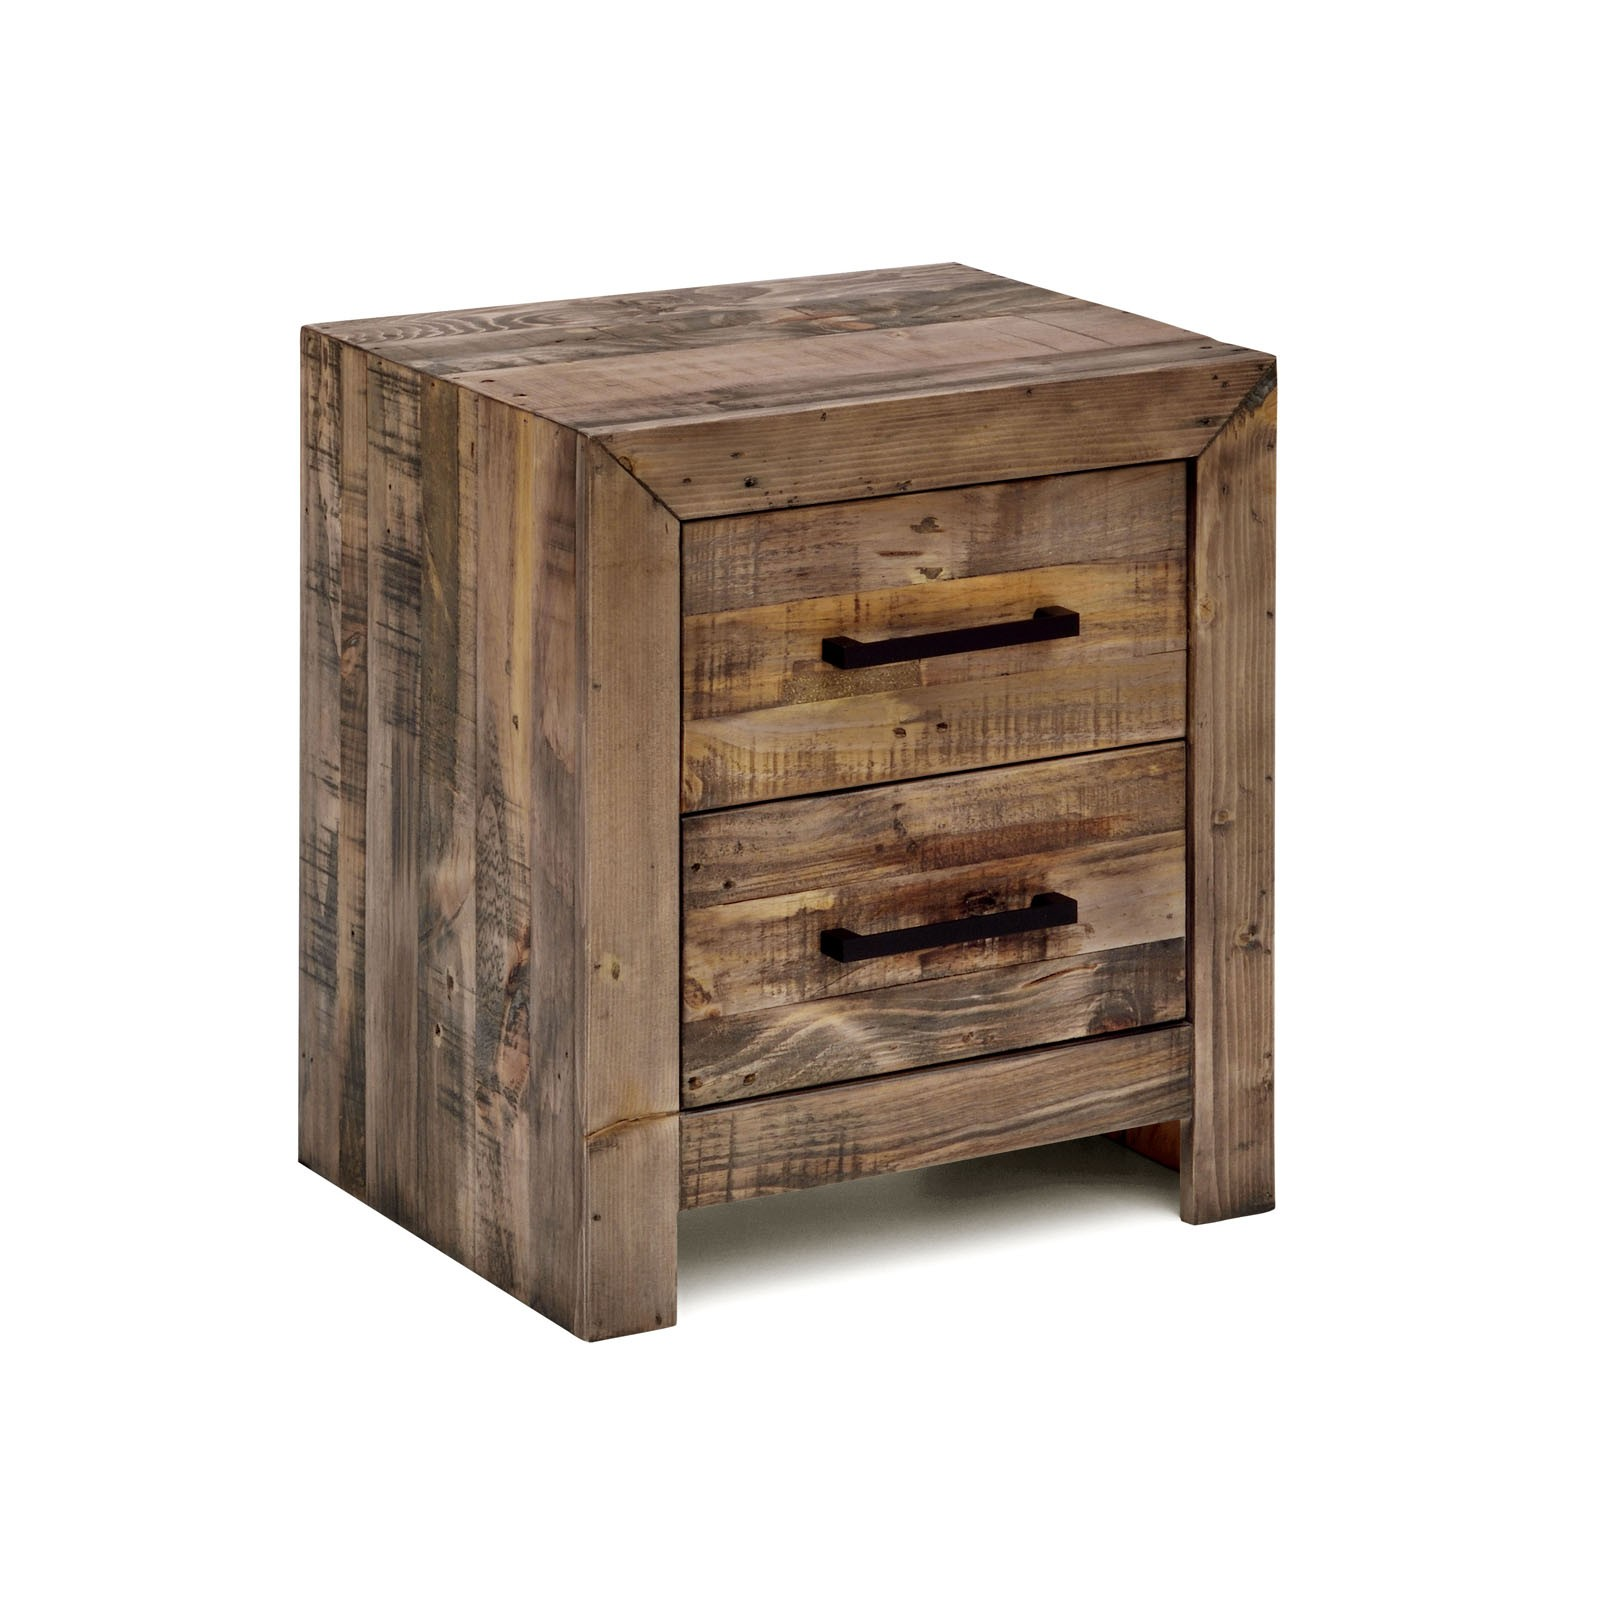 Boston Recycled Solid Pine Timber Bedside Table Storage